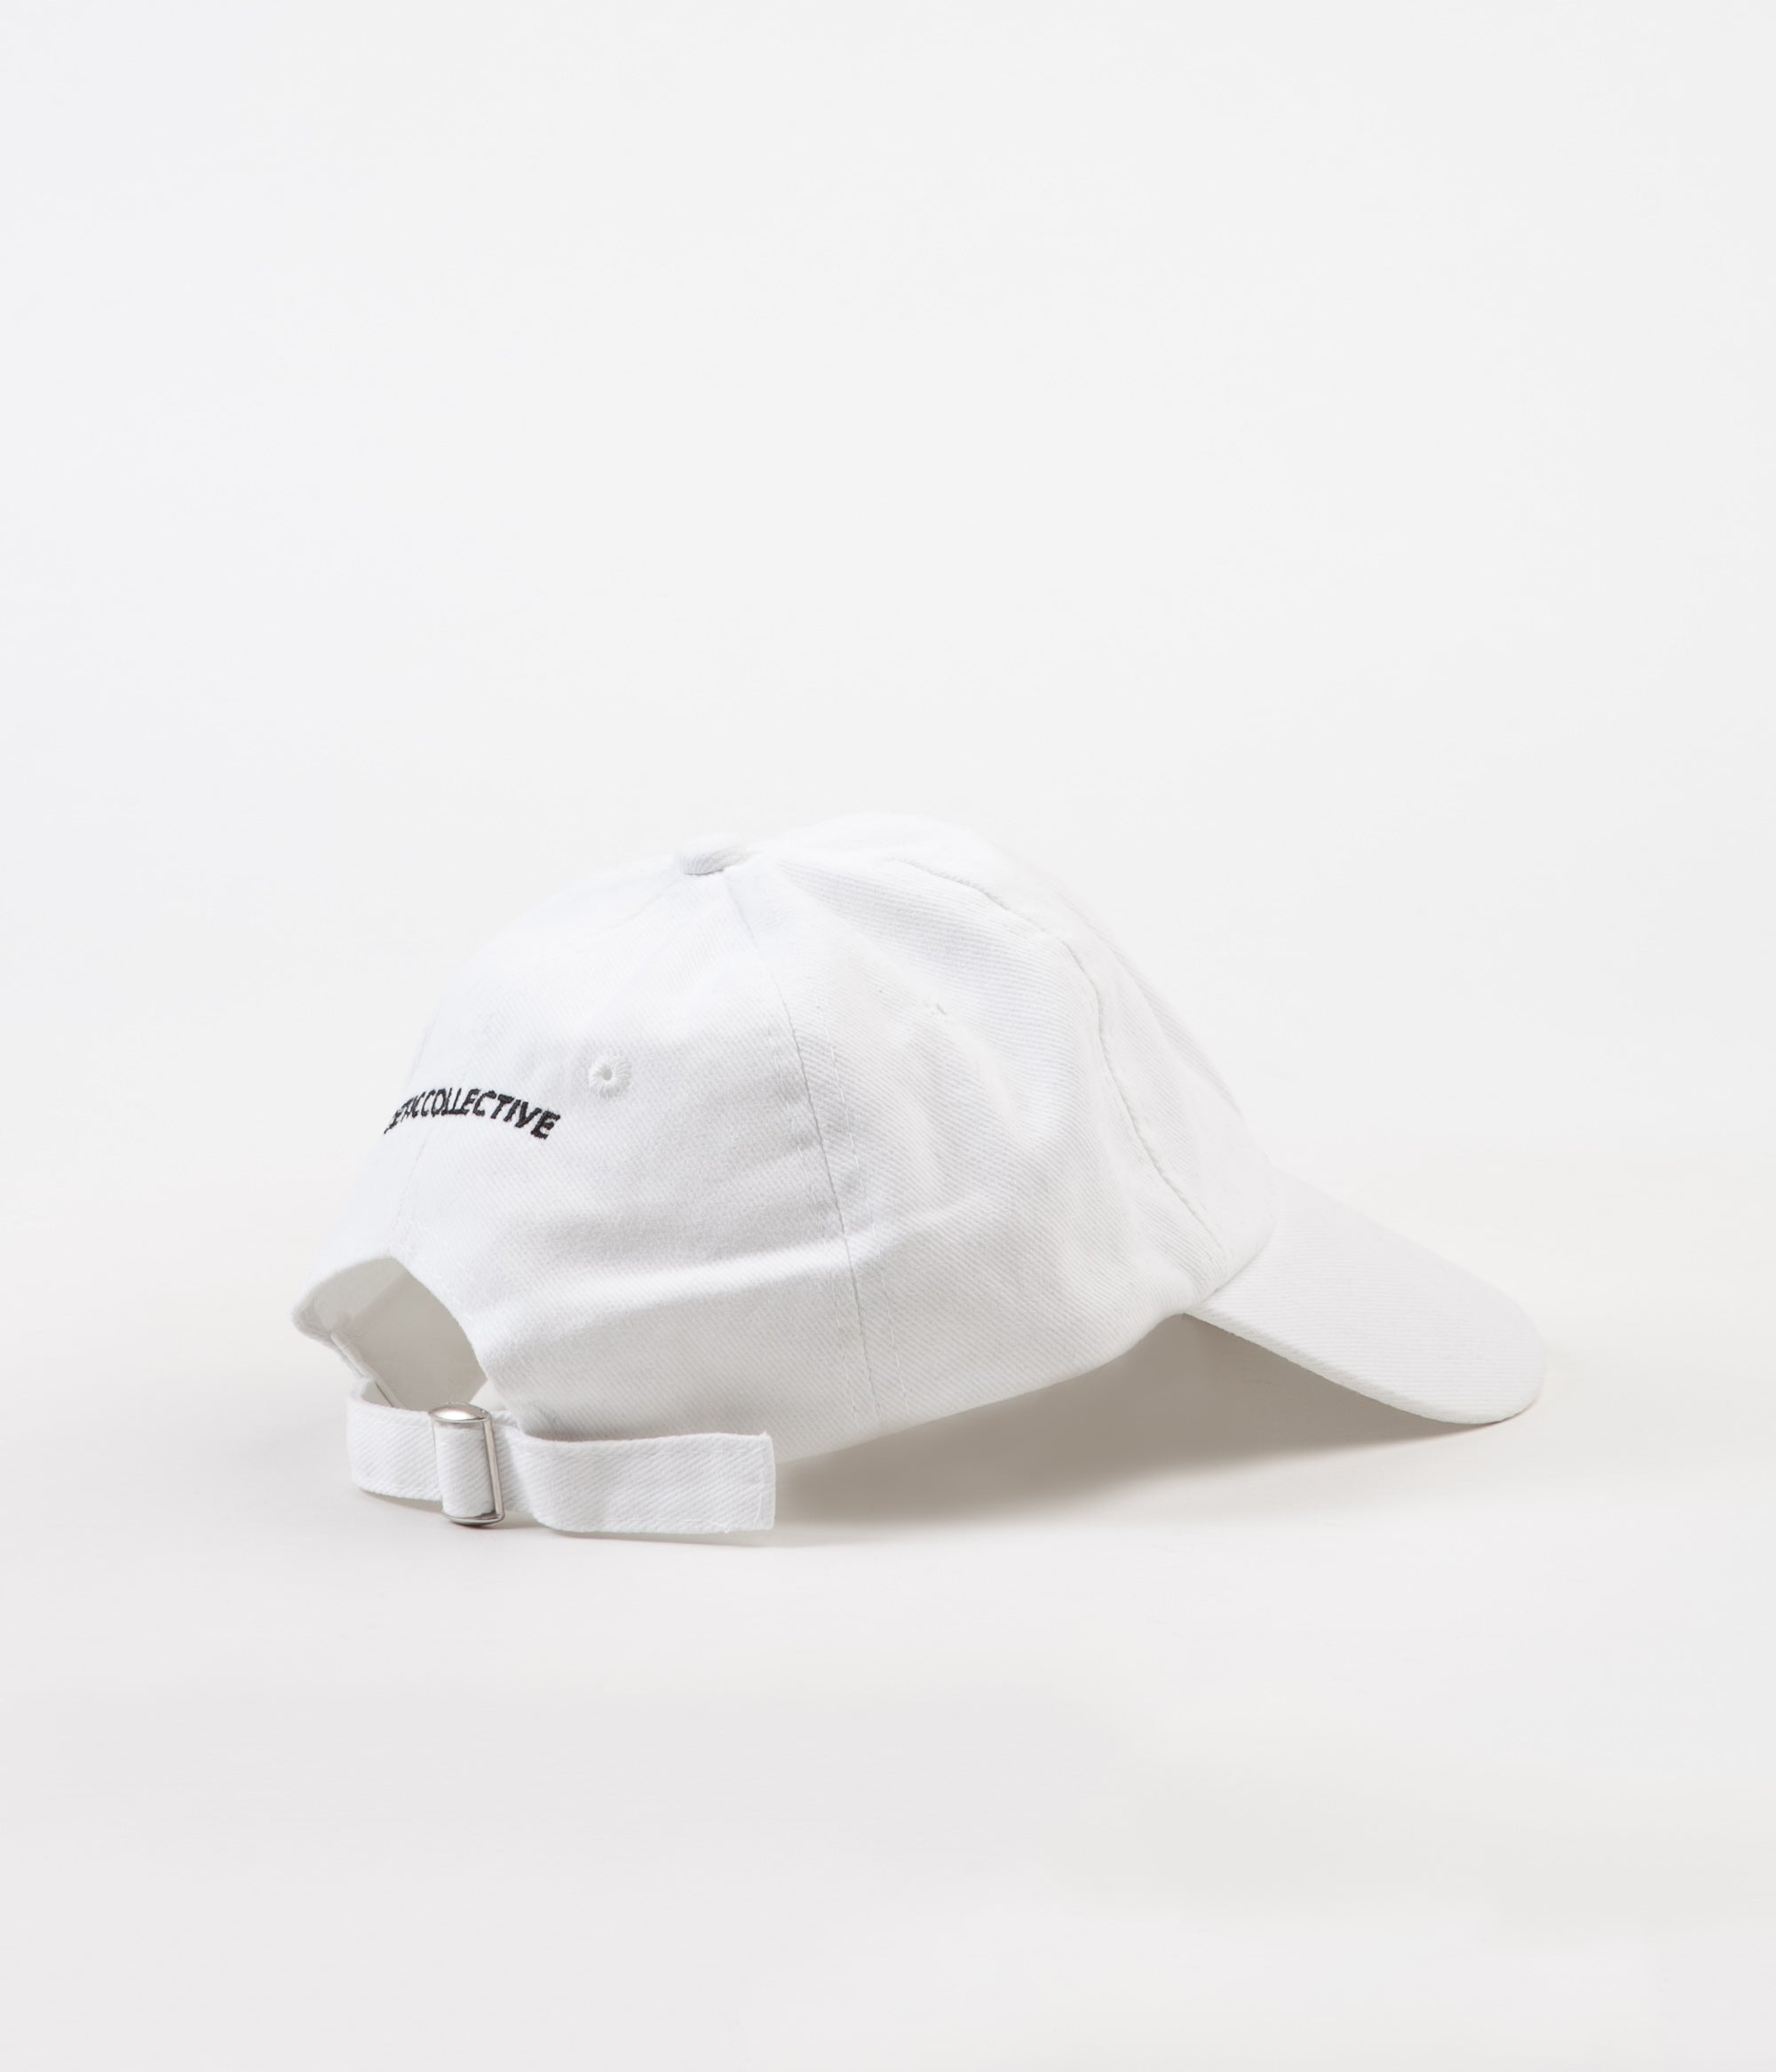 Poetic Collective Cap - White / Black